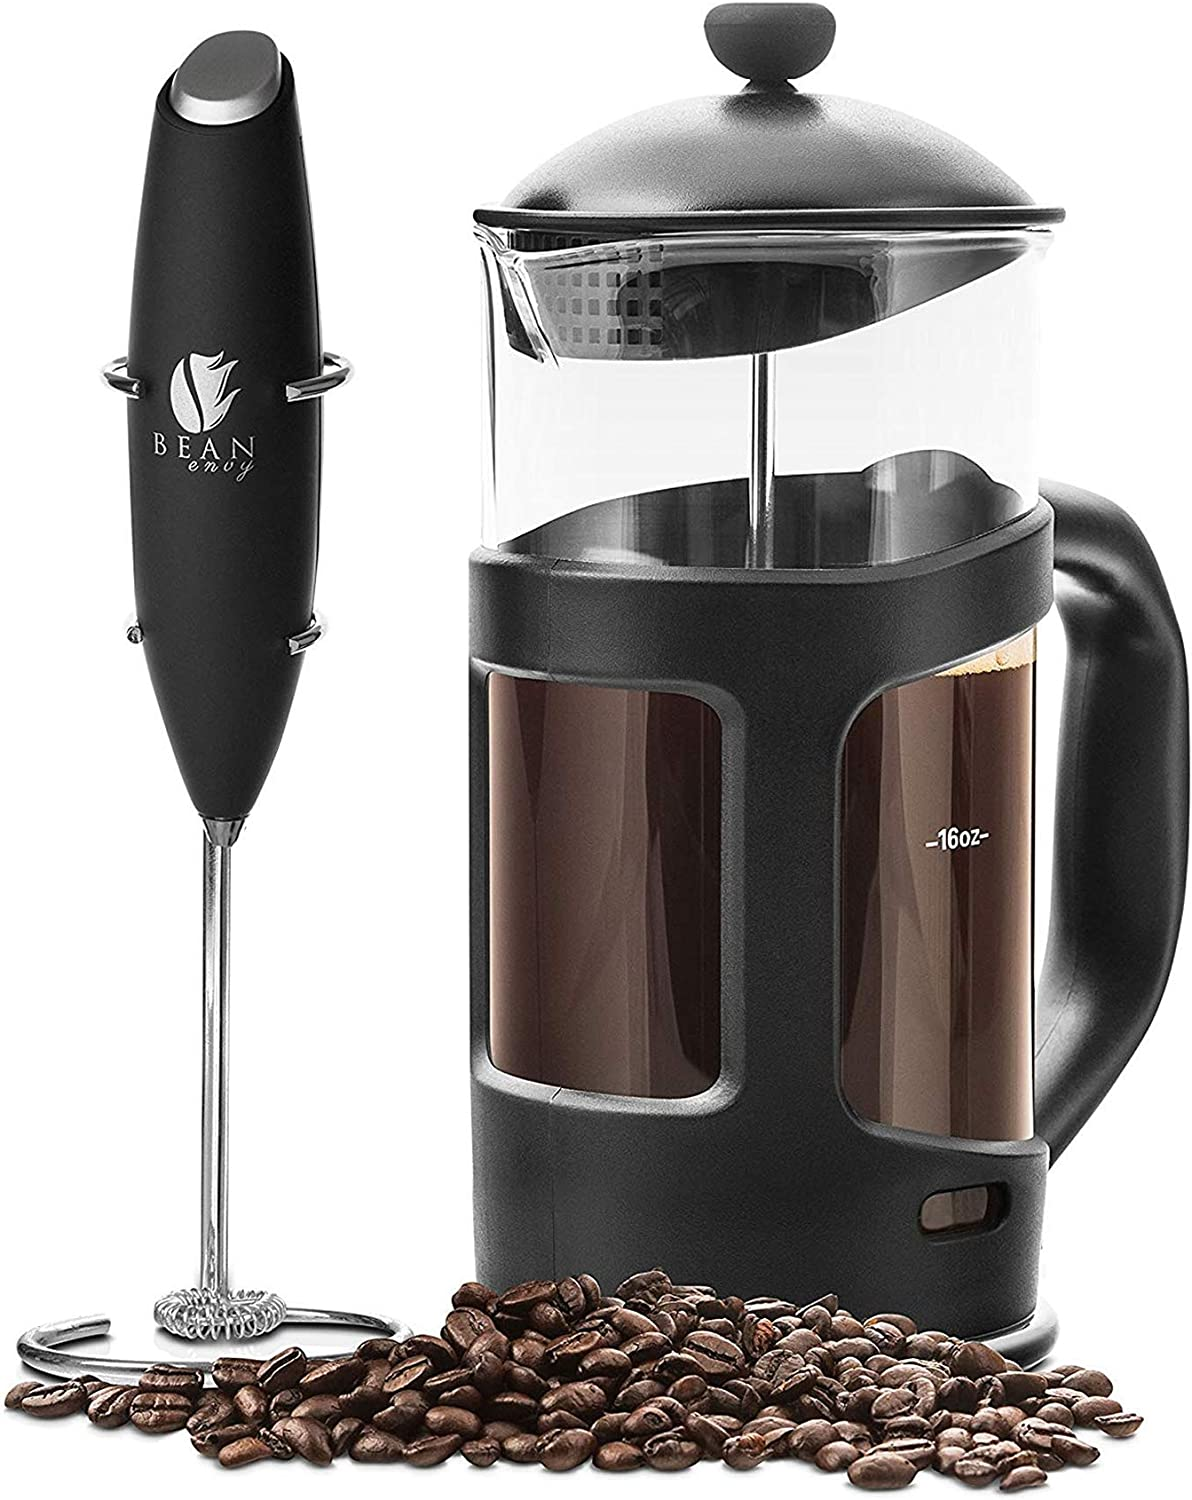 Professional Grade 34 oz French Press Coffee Maker & Premium Milk Frother With Stainless Steel Stand - Save Time & Money With Homemade Lattes! Spice ...